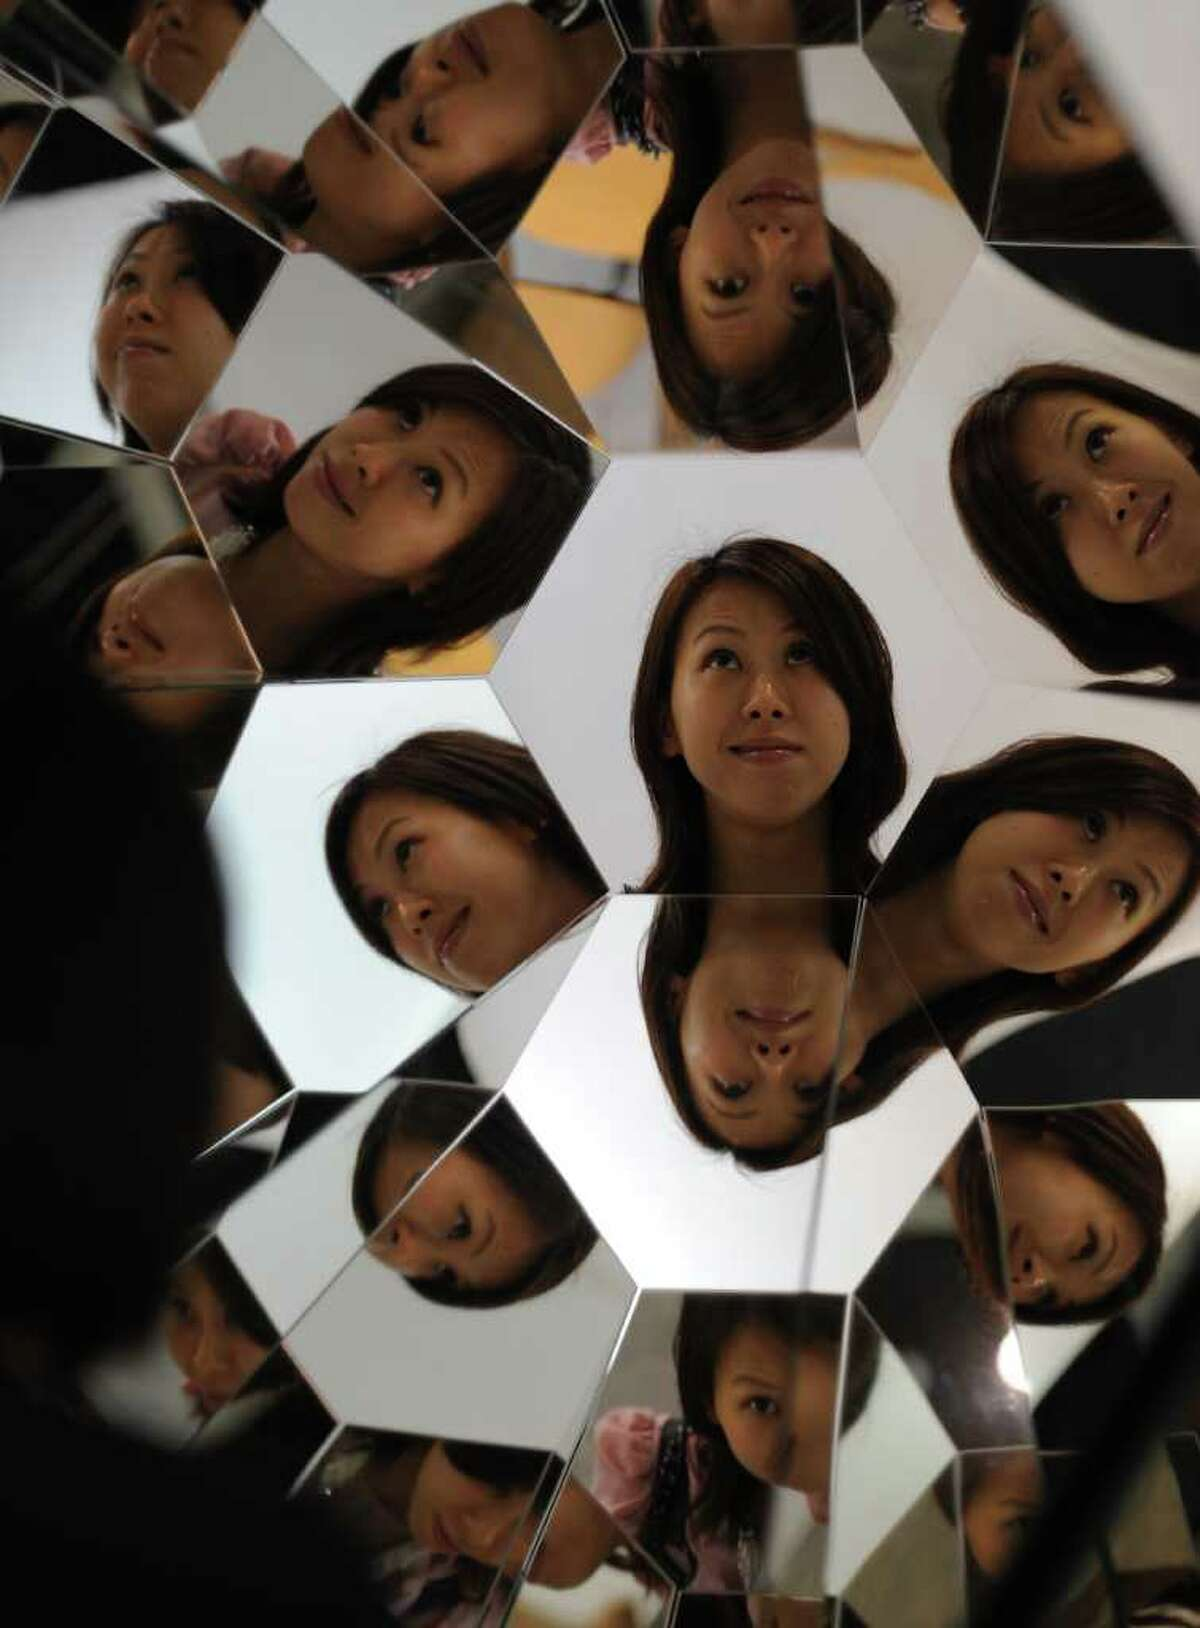 A woman looks at a work entitled 'Your Plural View' by Olafur Eliasson featuring a mirror using stainless steel and aluminum at the Hong Kong International Art Fair in Hong Kong on May 25, 2011.